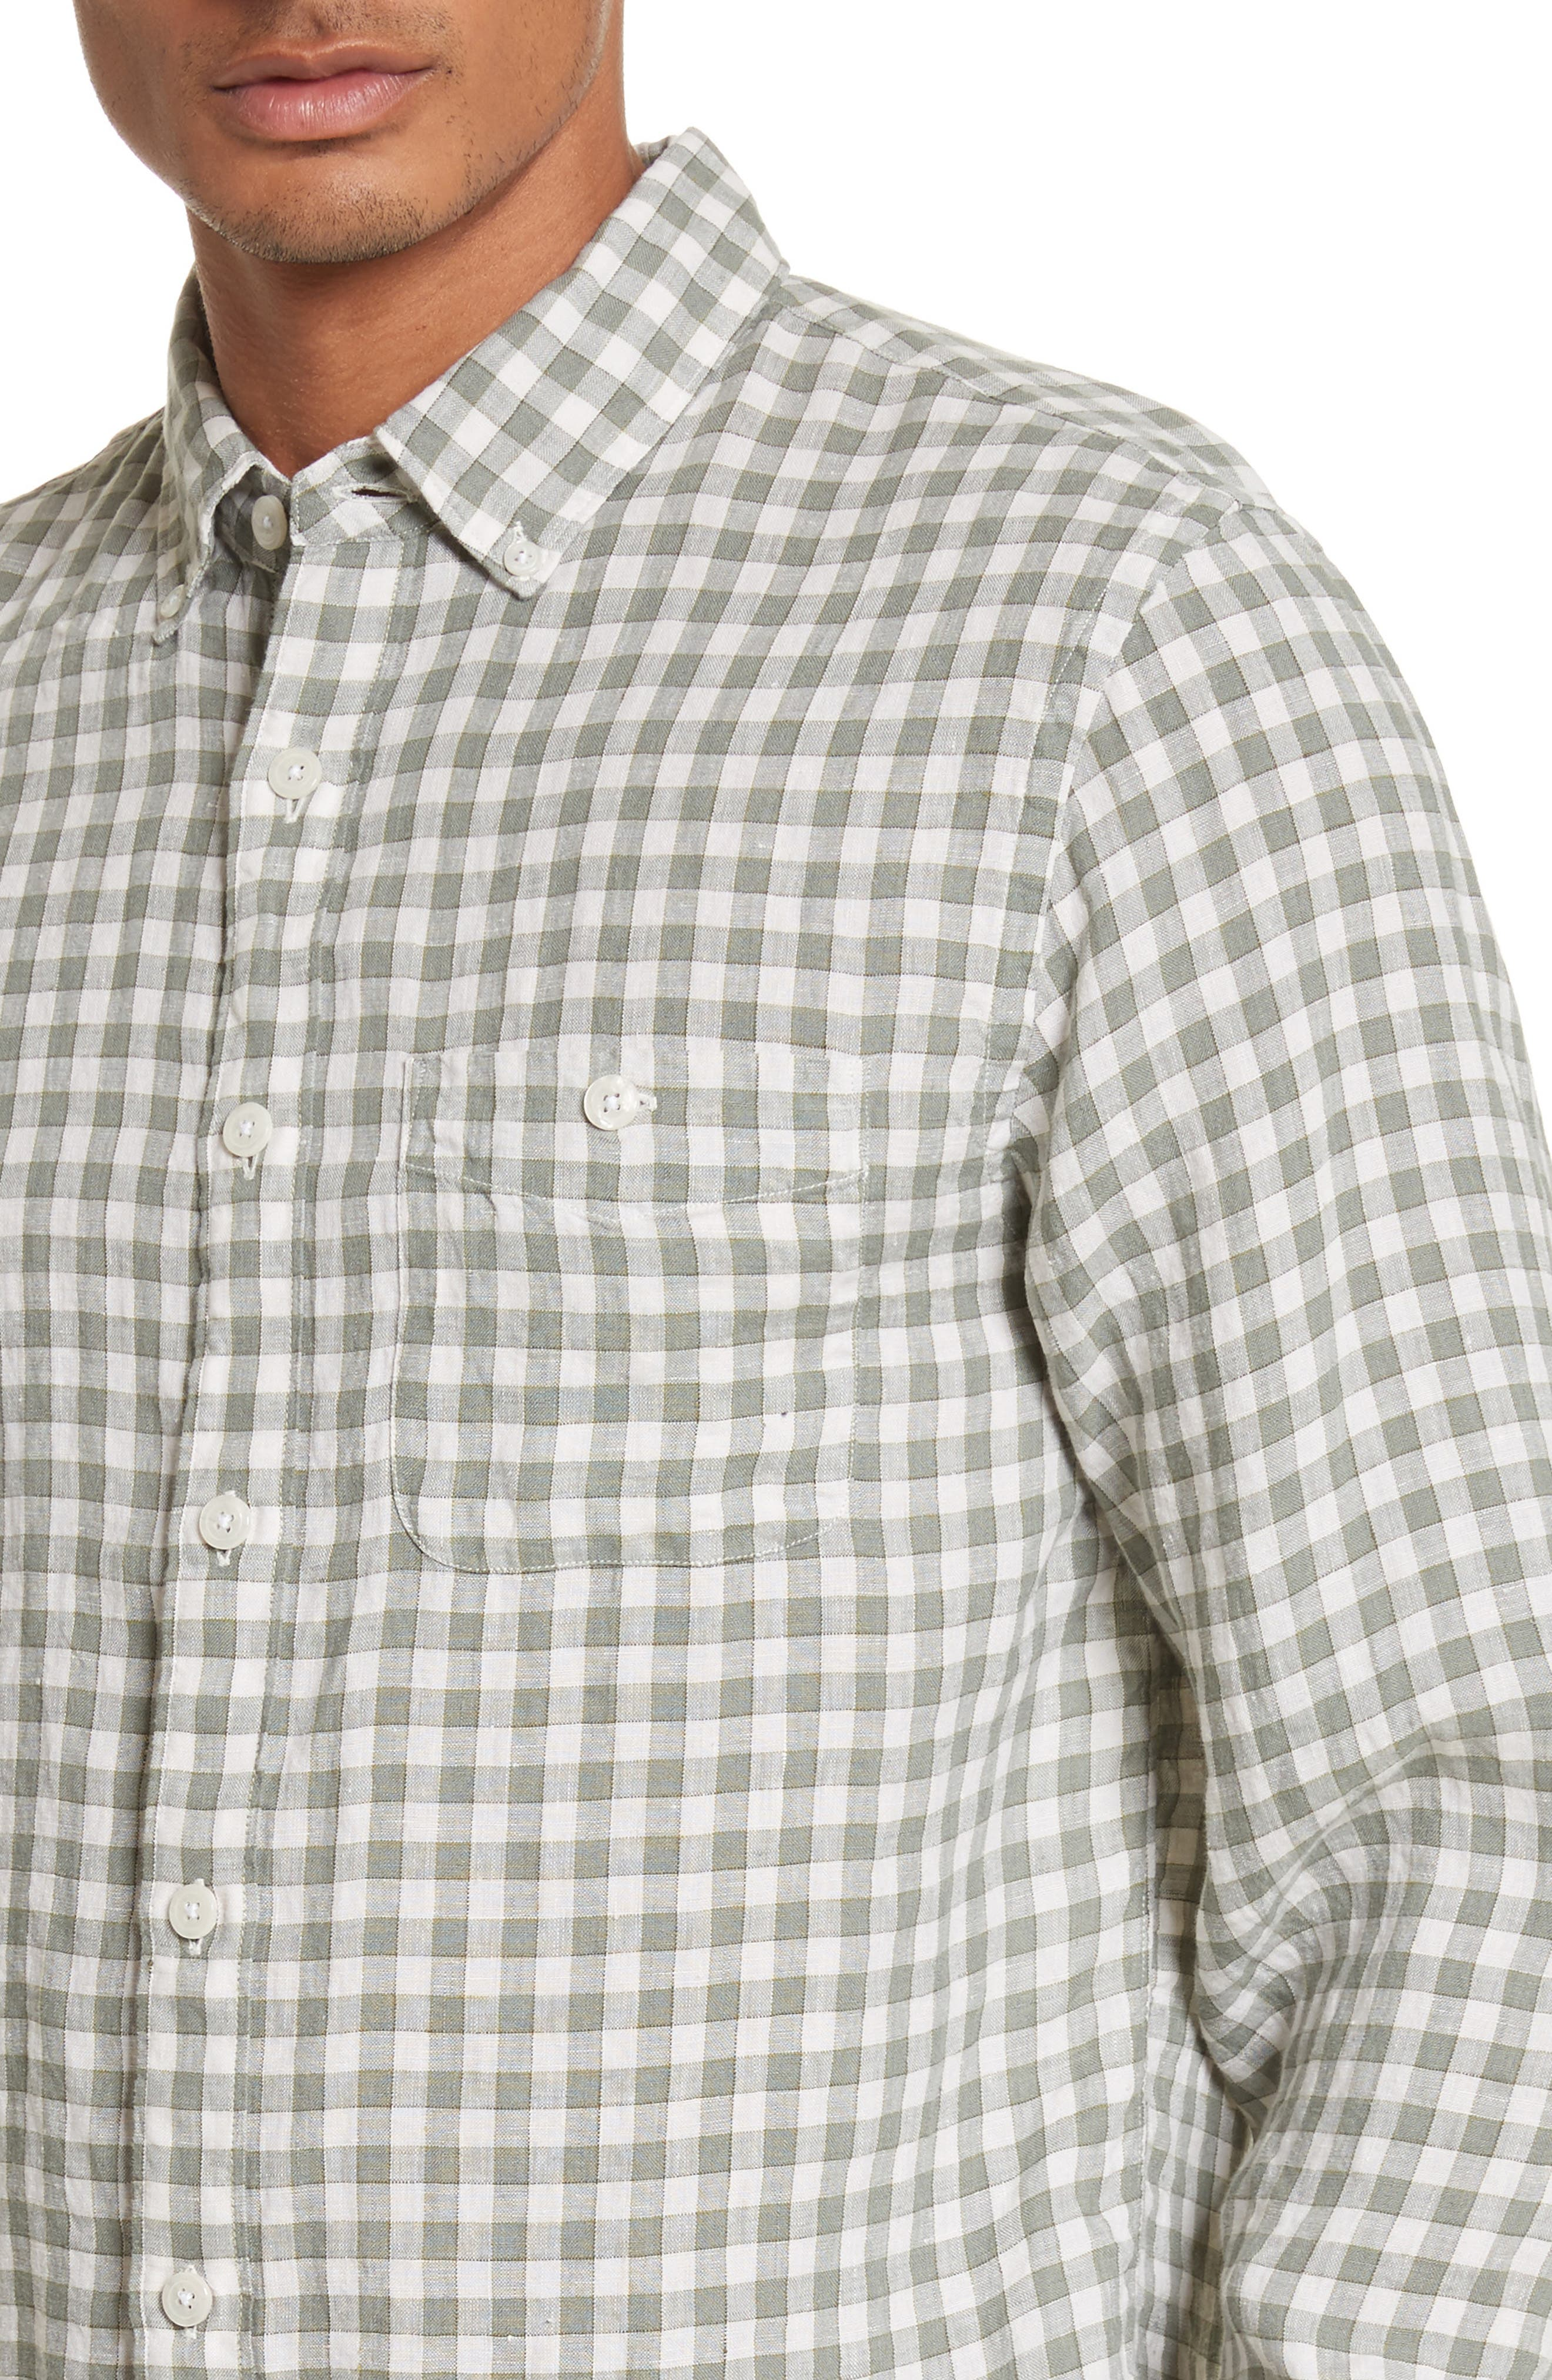 Alternate Image 4  - Todd Snyder Check Woven Shirt